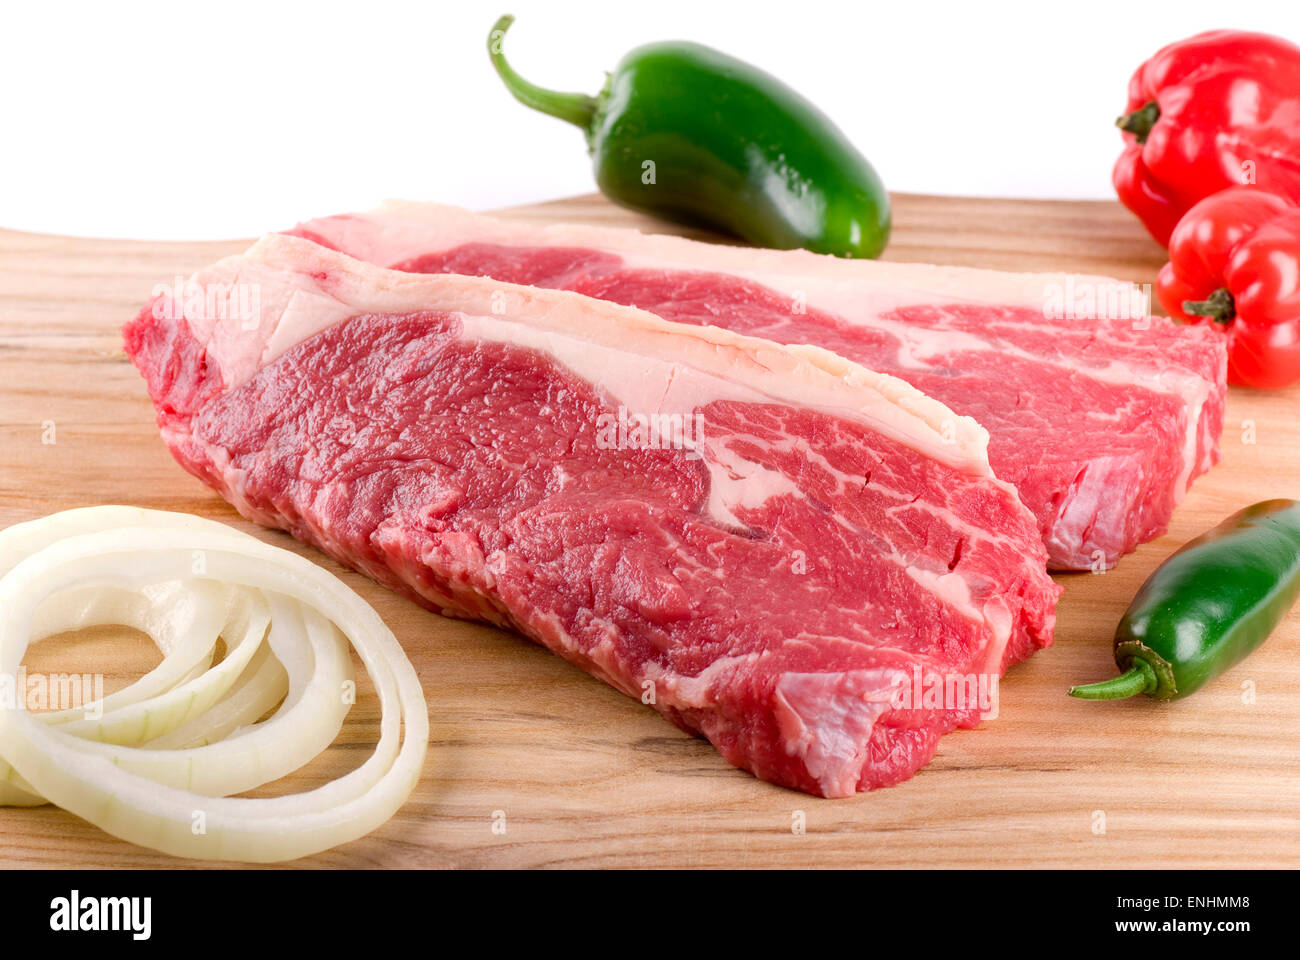 Two steaks with habanero, sliced onion and jalapeno. - Stock Image